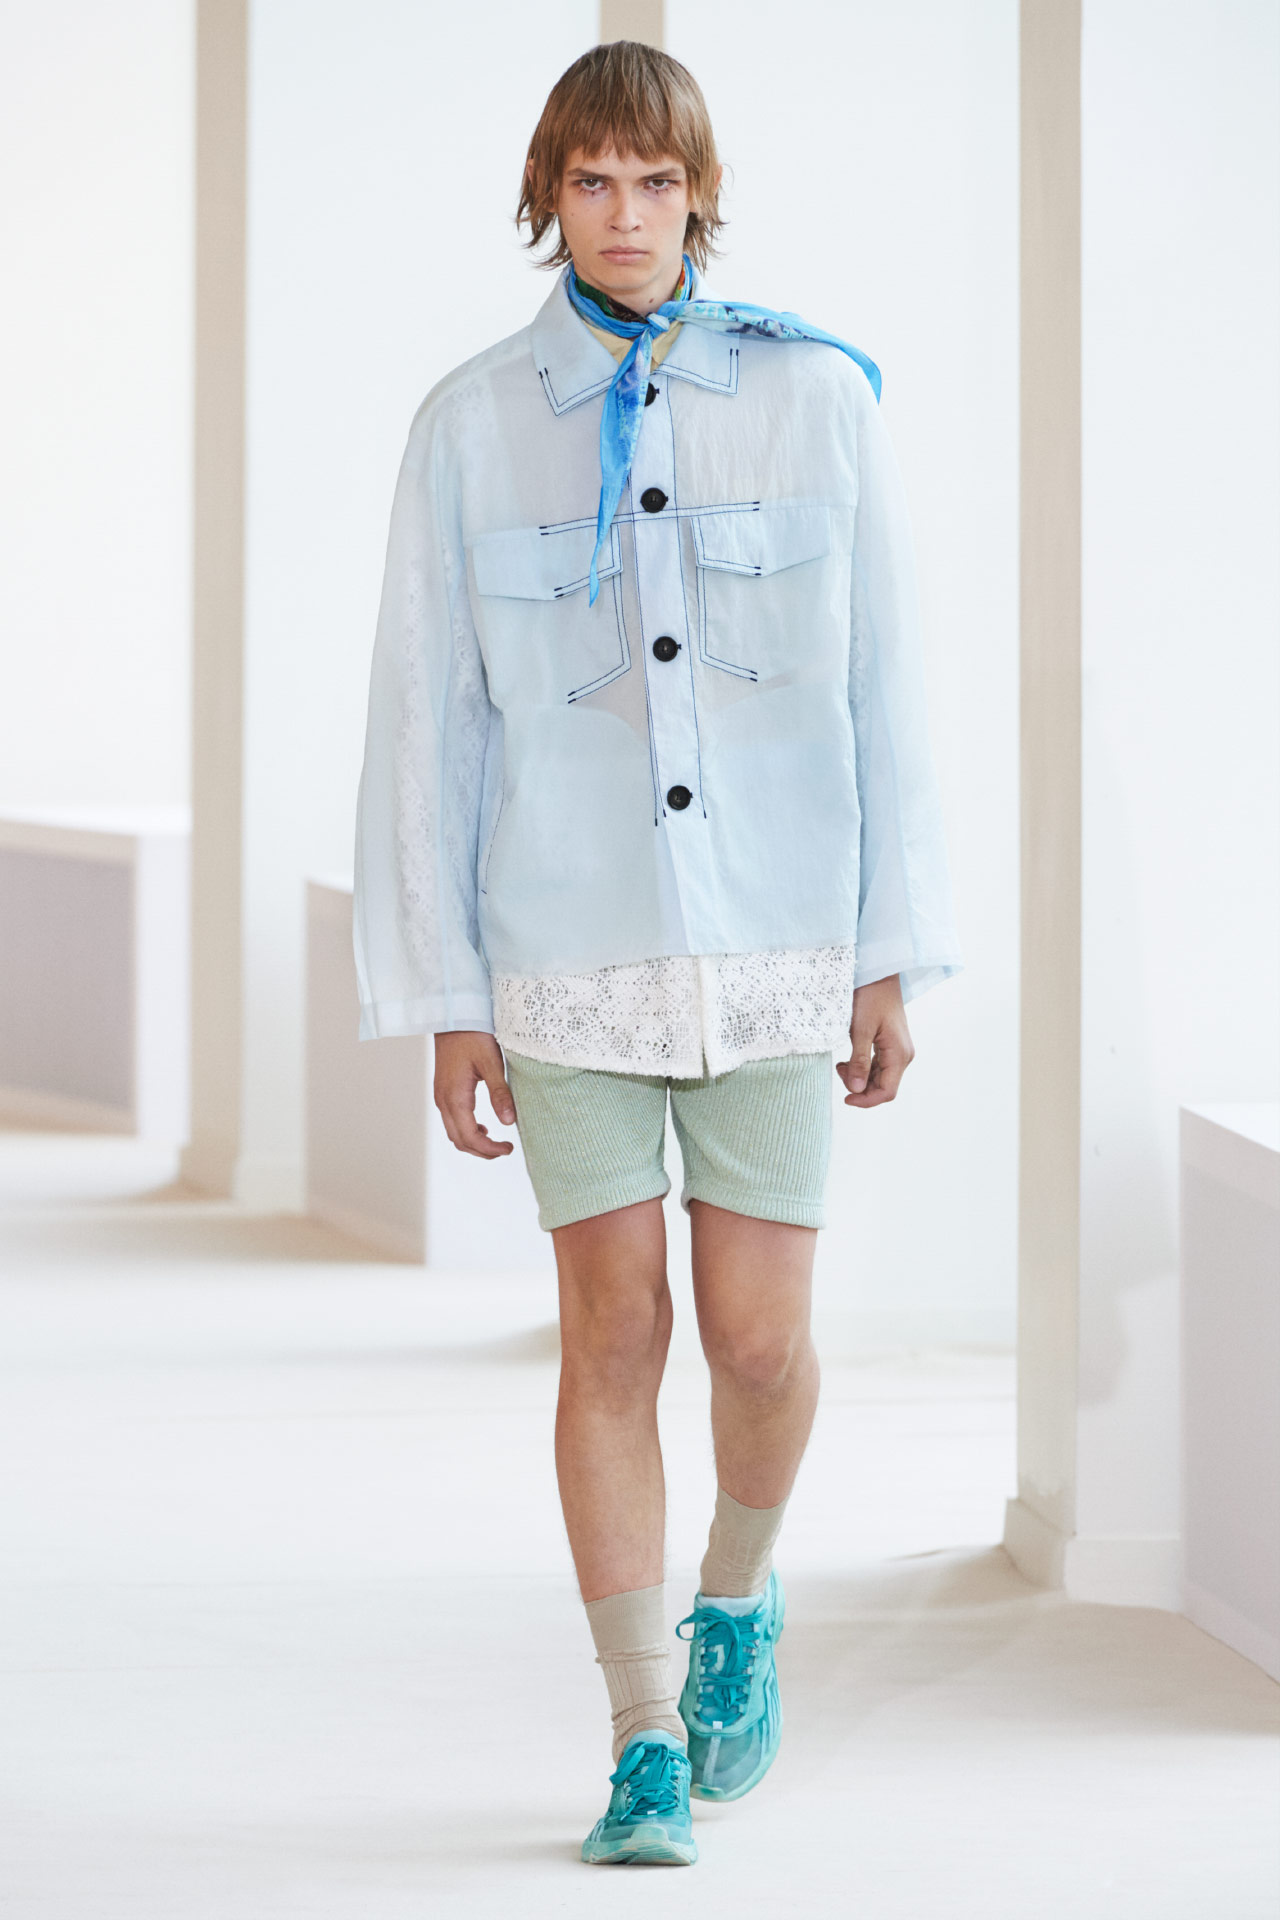 Look Spring/Summer, image 6